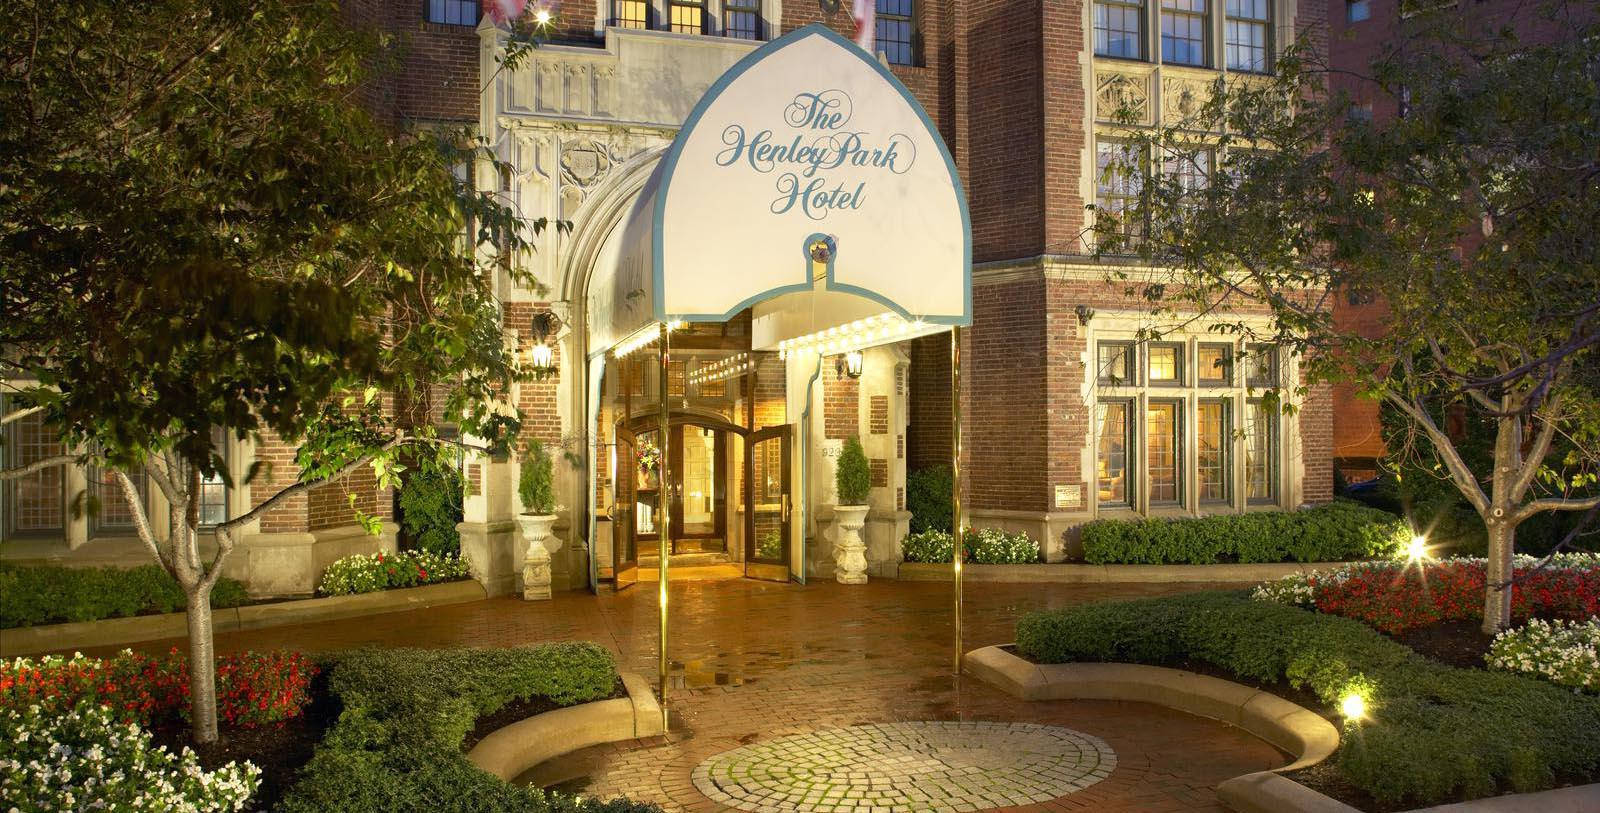 Image of Entrance The Henley Park Hotel, 1948, Member of Historic Hotels of America, in Washington, DC, Overview